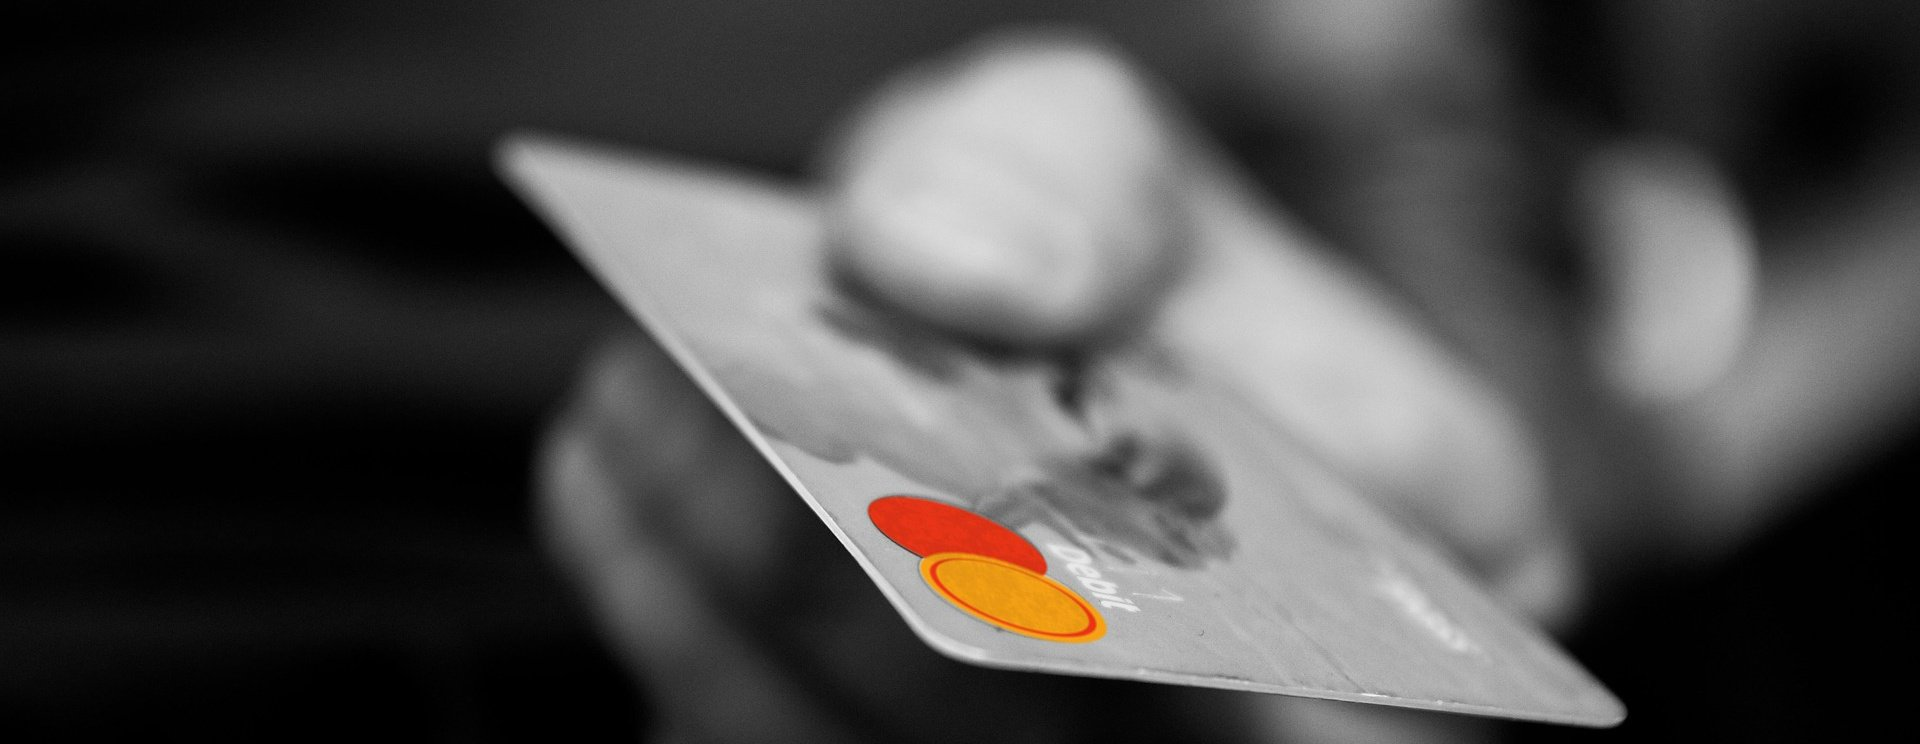 credit-card-black-and-white2